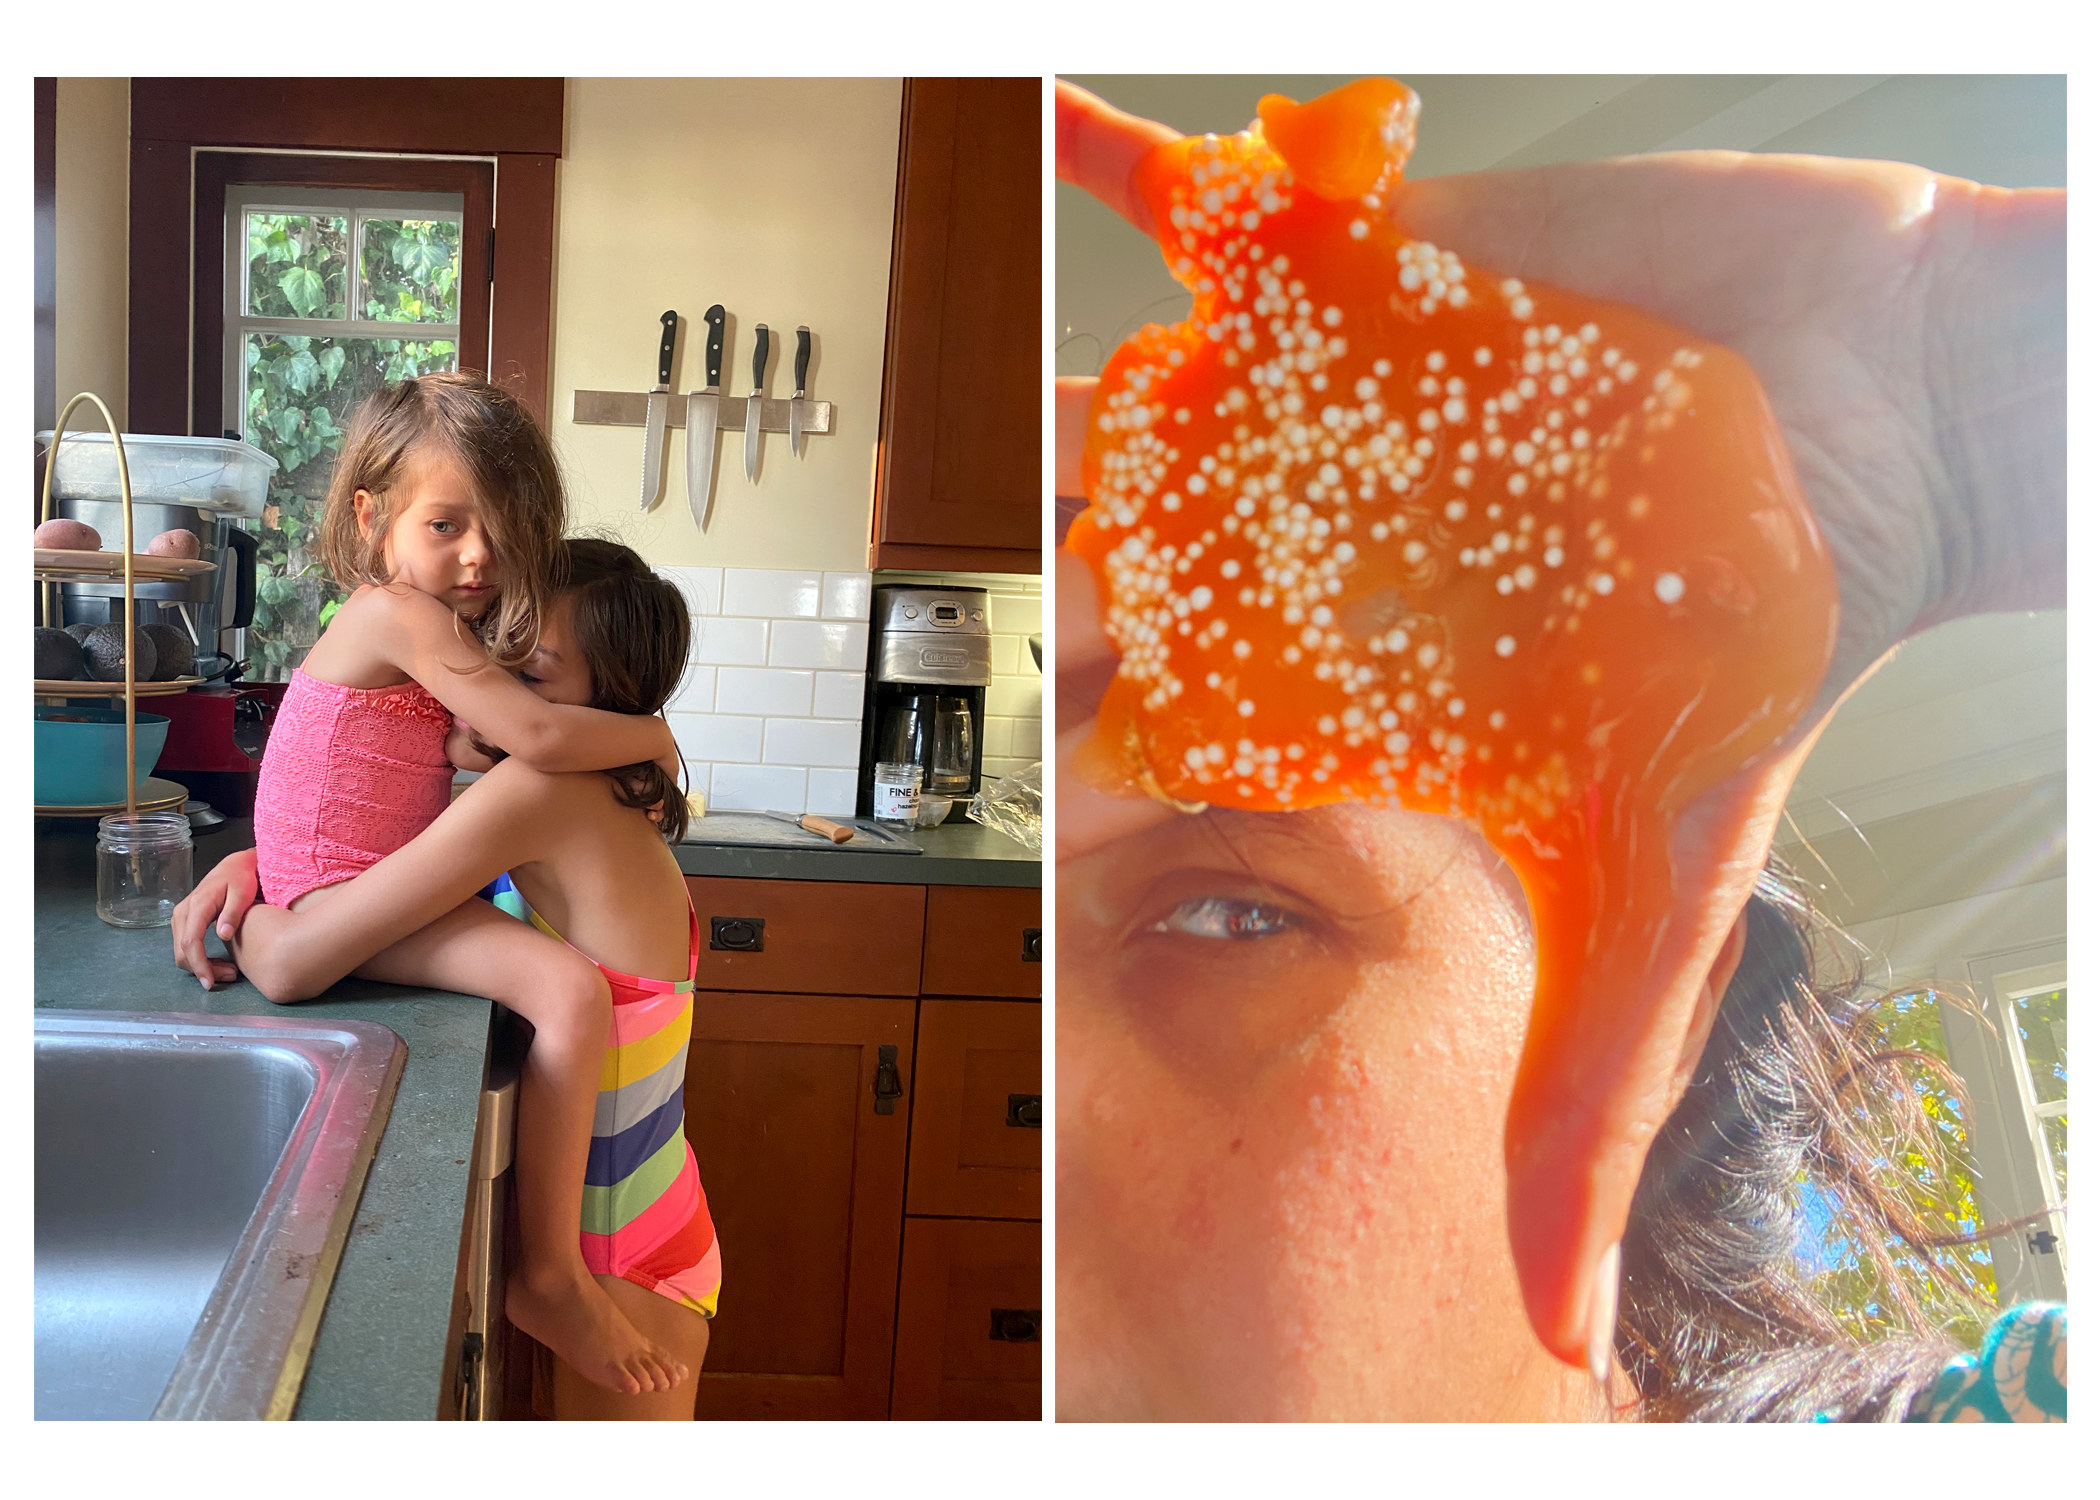 Two images side by side; on the left: a girl sitting on a kitchen counter embraces another older girl who is standing; on the right: a woman holds up her hand covered in slime toward the camera